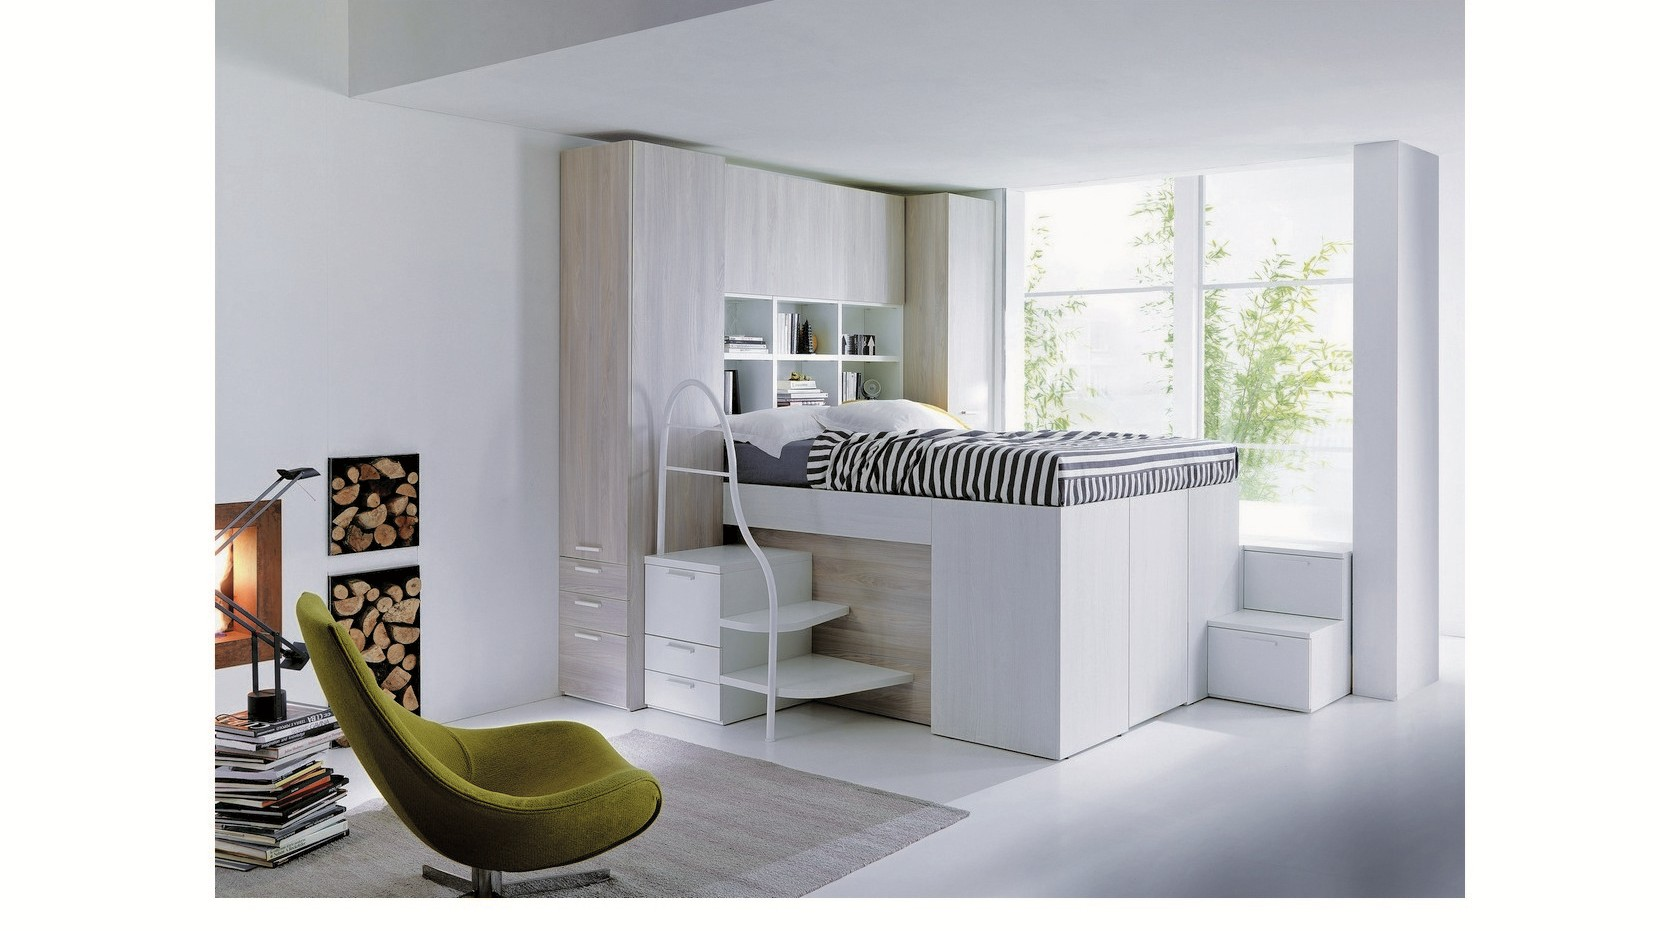 cylinder closets rod white black metal the org designs and pilotproject wooden home best closet one also hangers using shelves decorating curtain with rods of rectangular bedroom decoration hidden design fancy ideas interior door cool silver